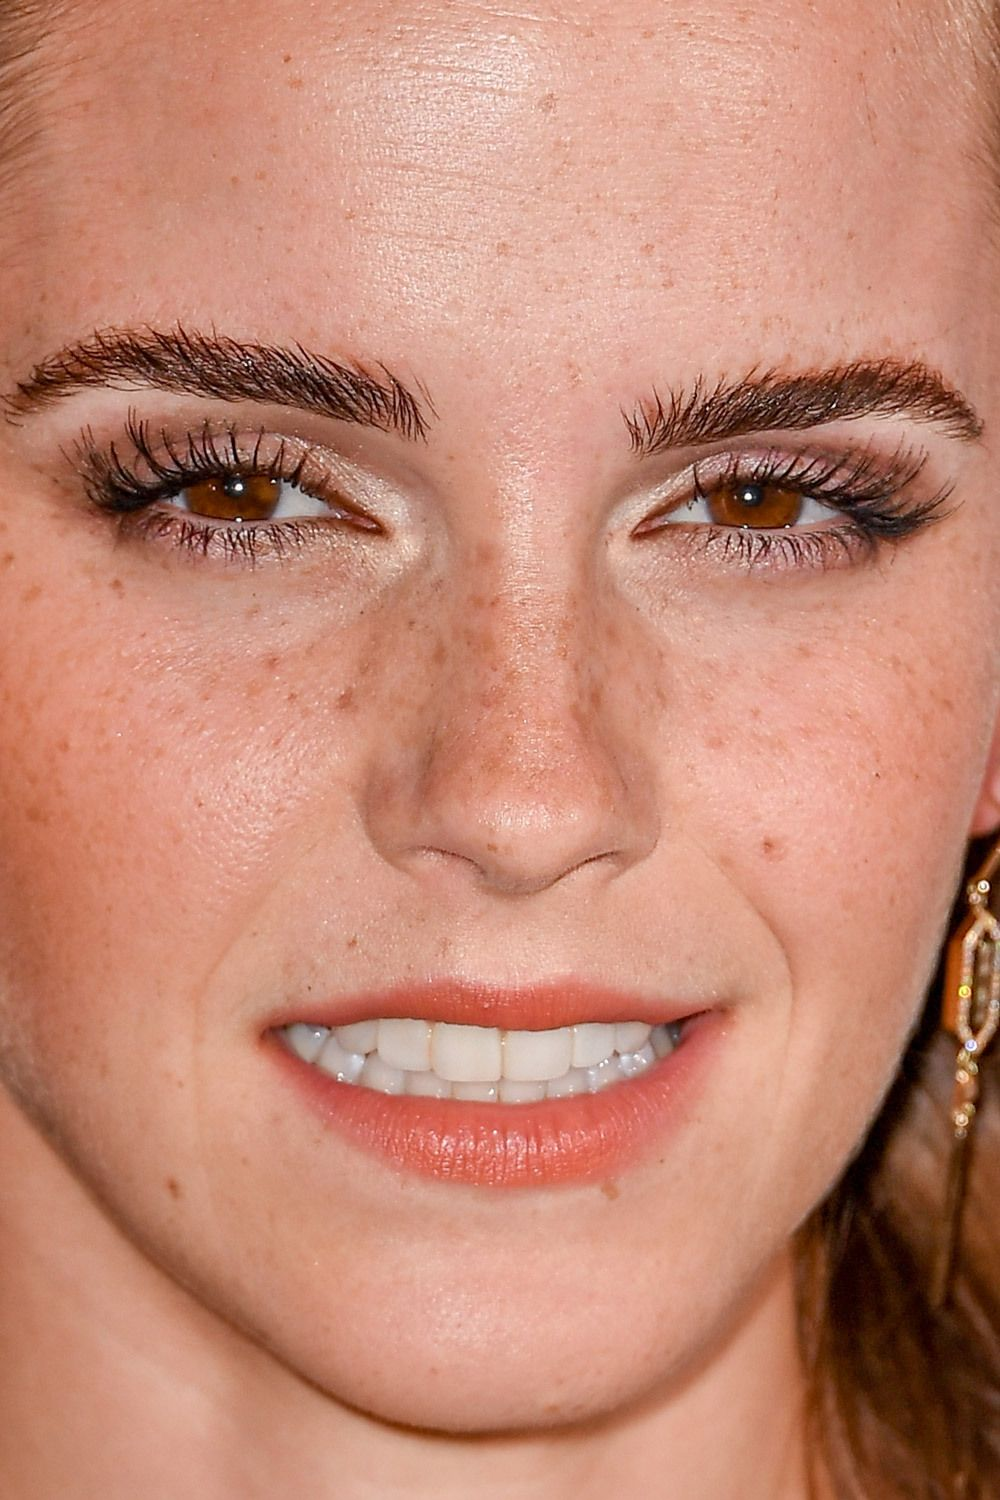 Celebrity Close Up Seeing Celeb Faces This Close Can Surprising Unflattering Photos With Acne Plastic S Emma Watson Makeup Emma Watson Beautiful Emma Watson